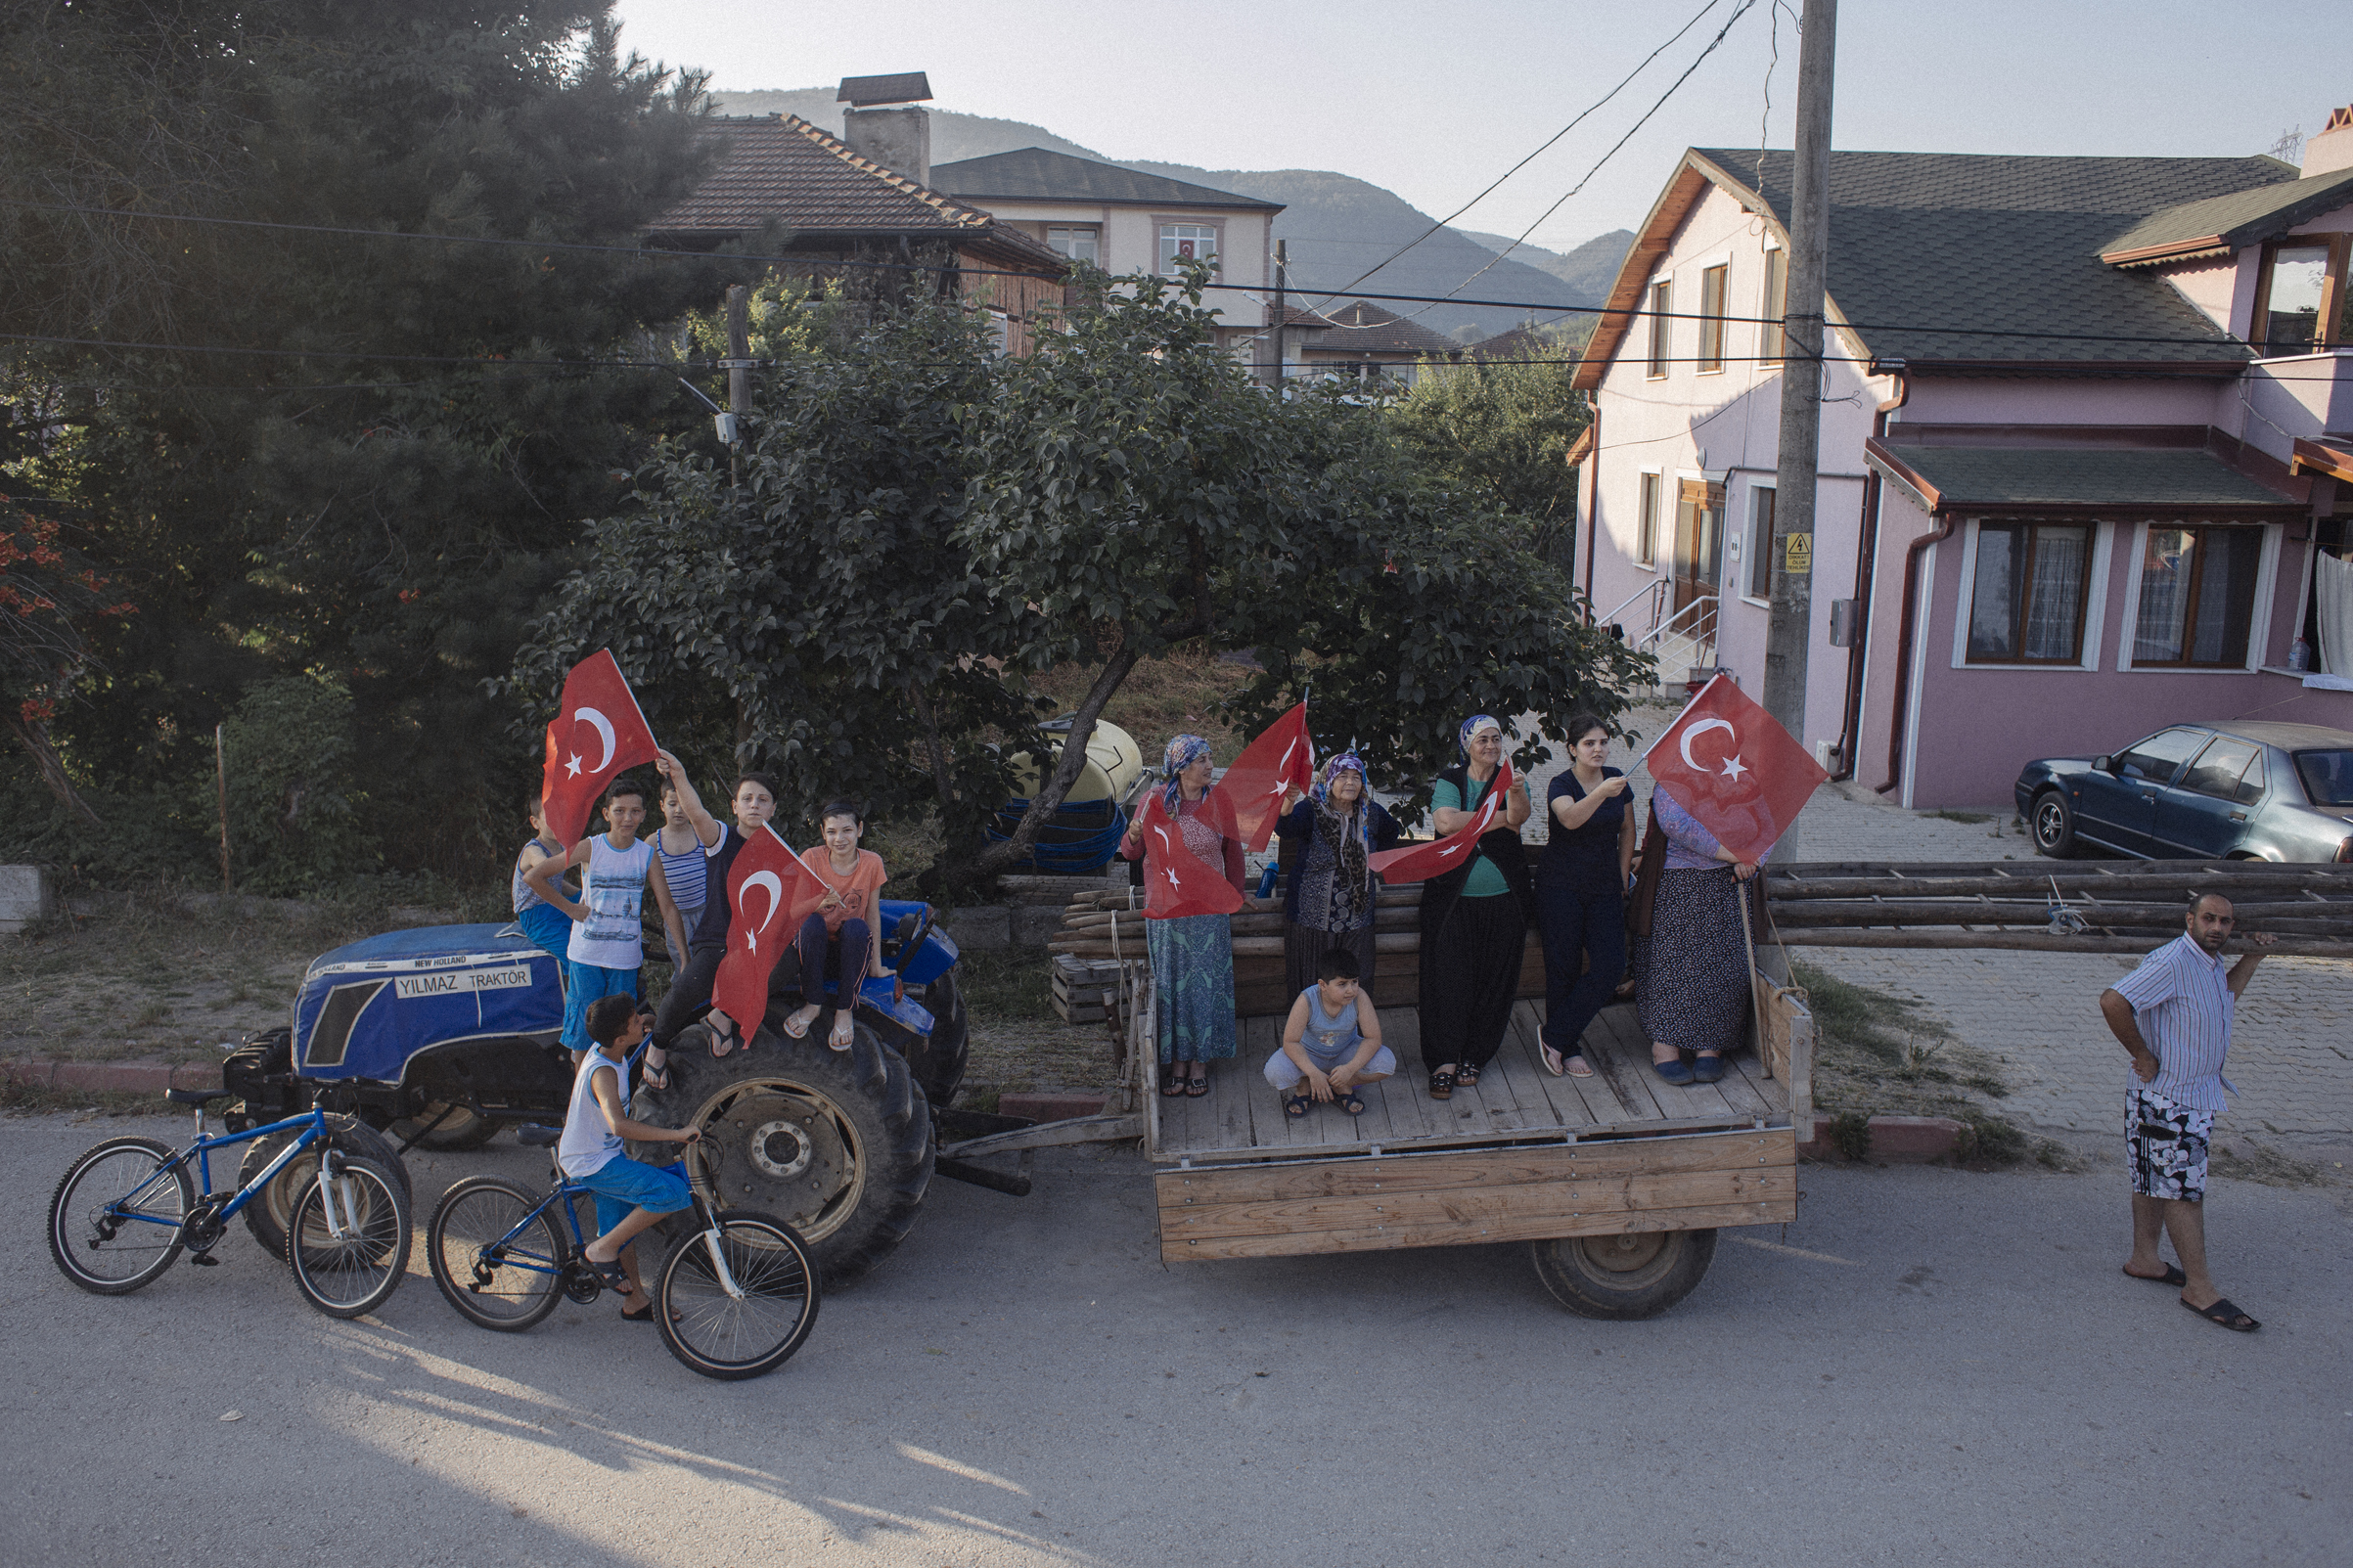 Villagers support the Justice March near the highway in Kartepe, Turkey as protestors make their way from Ankara to Istanbul, July 2, 2017. There were a surprising number of well-wishers along the march route, including in Duzce, a stronghold for President Recep Tayyip Erdogan.